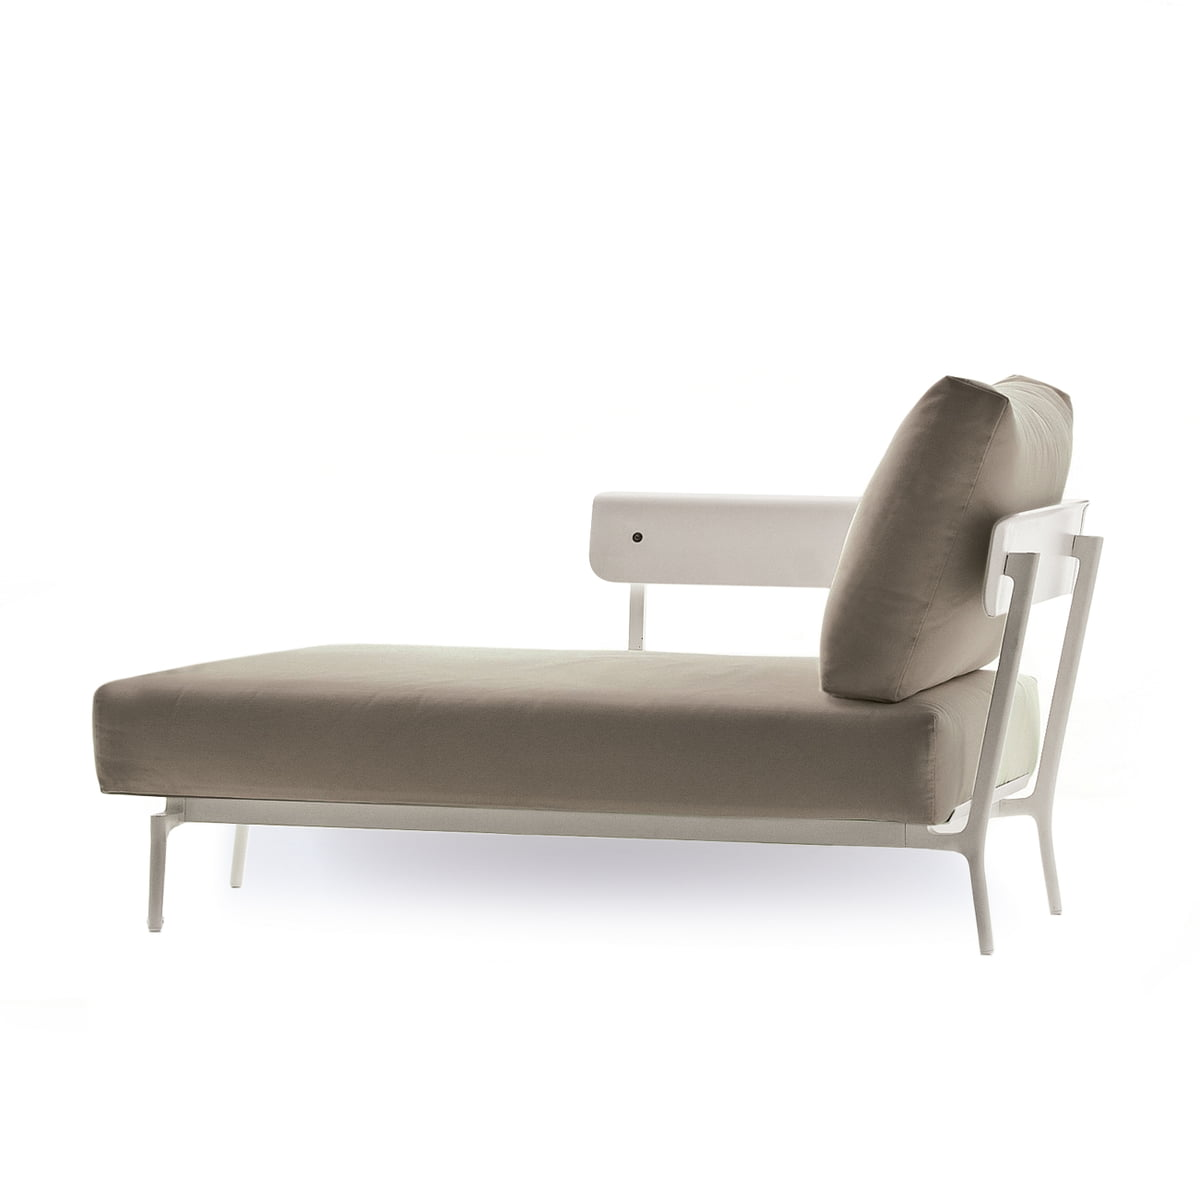 The aikana chaise longue by fast in the shop for Chaise longue chilienne